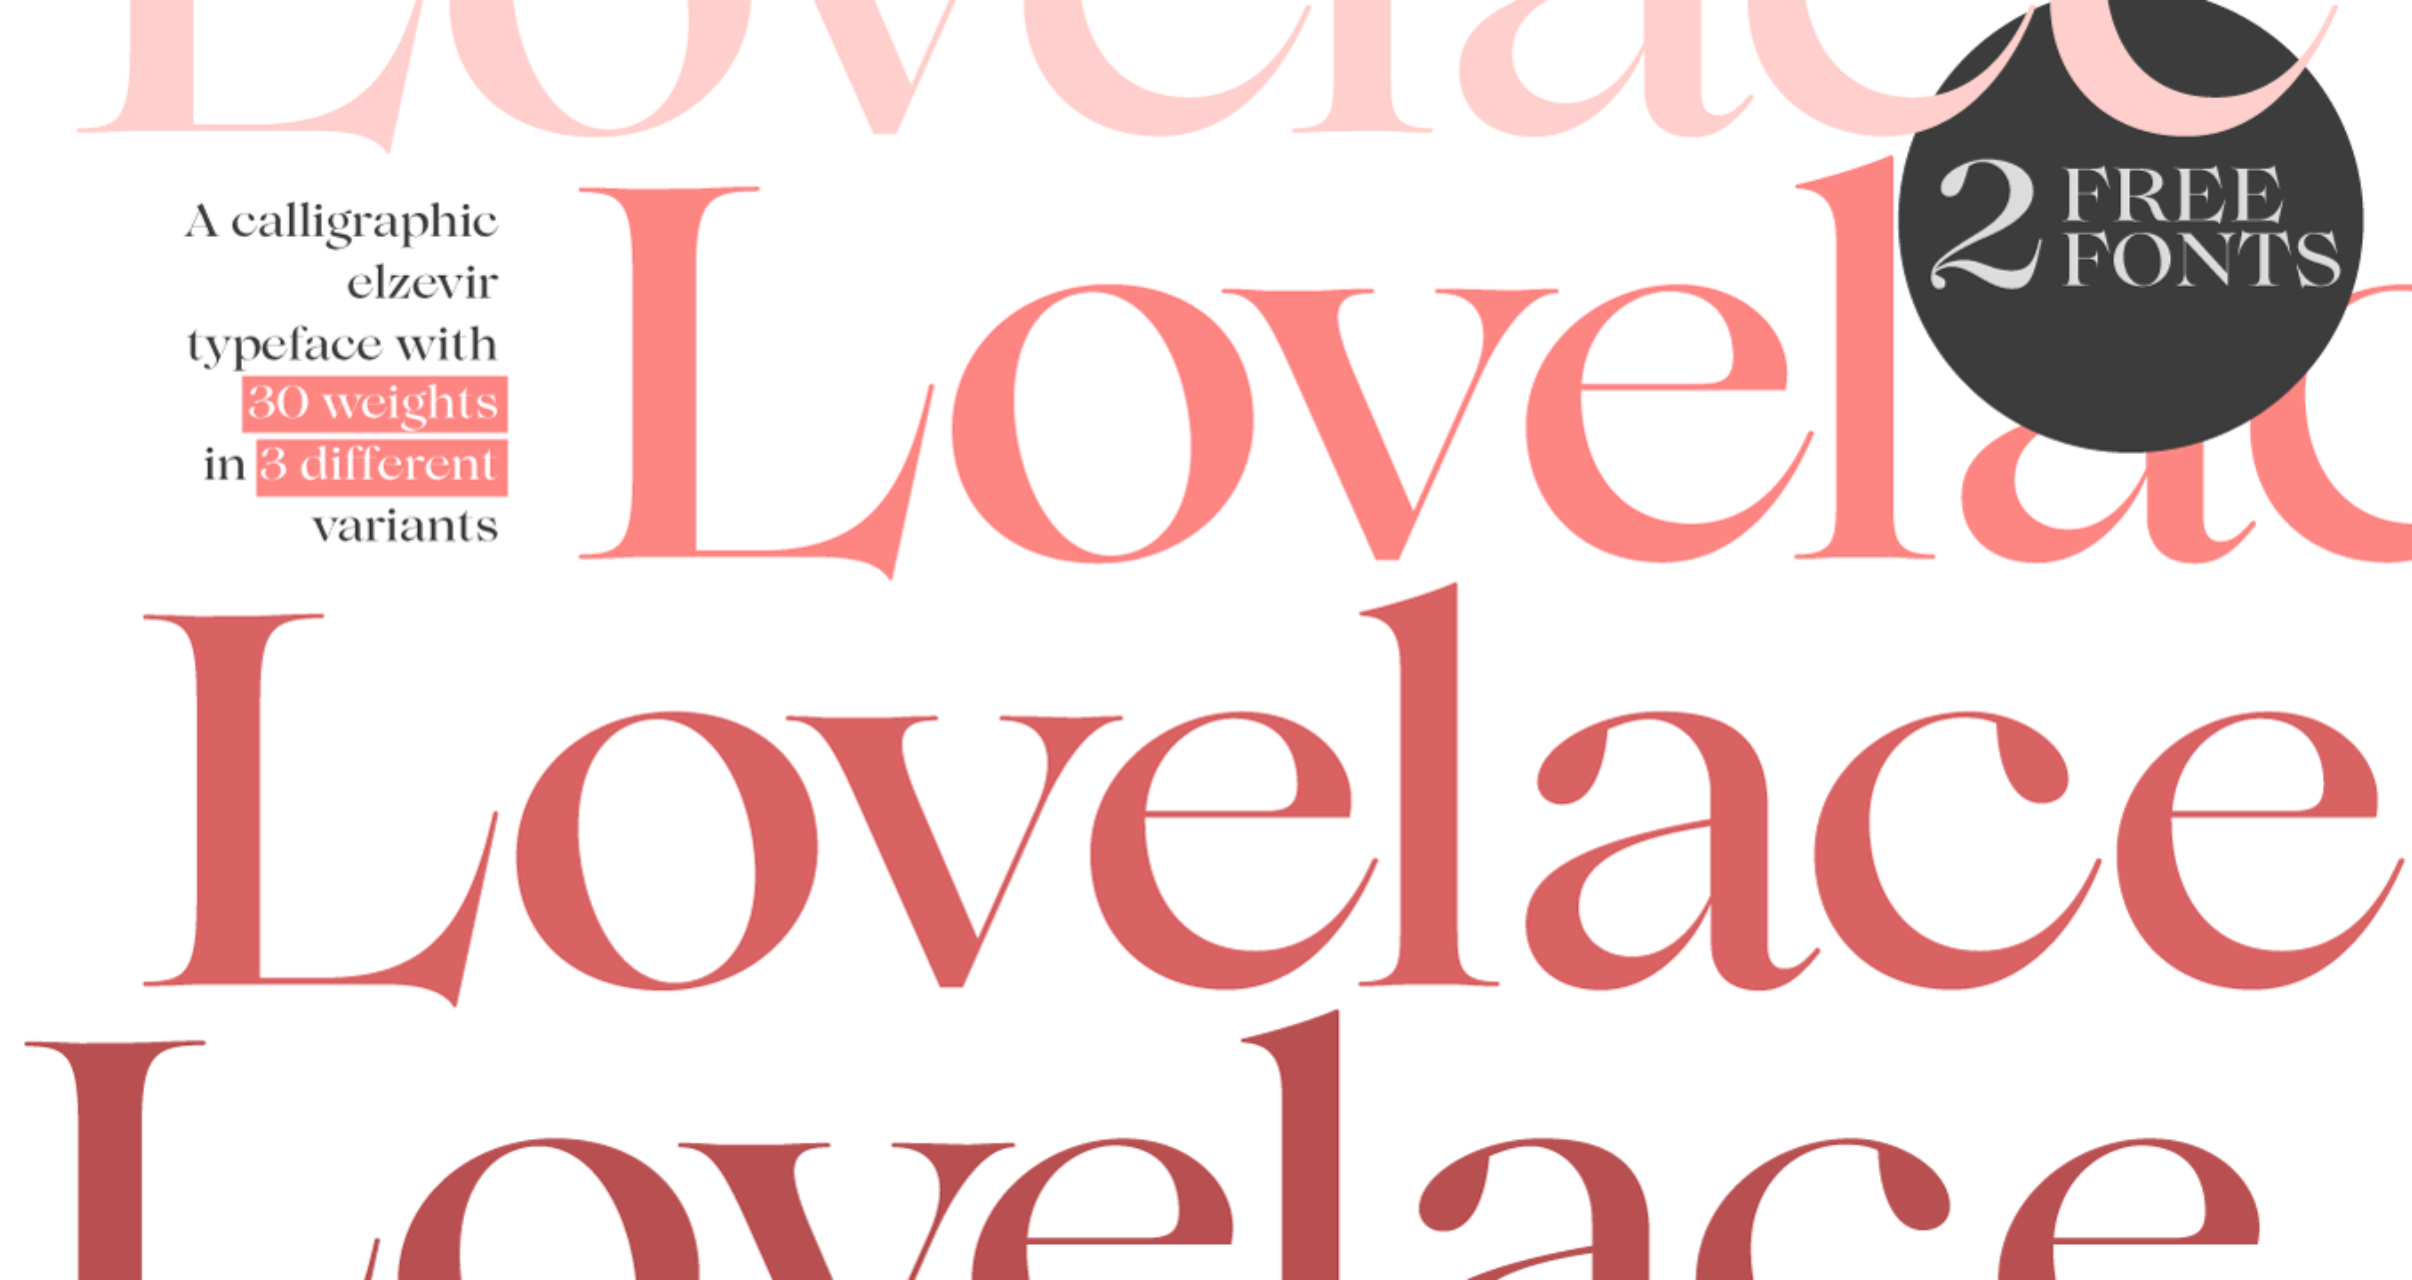 All styles of Lovelace are 75% off, with two free